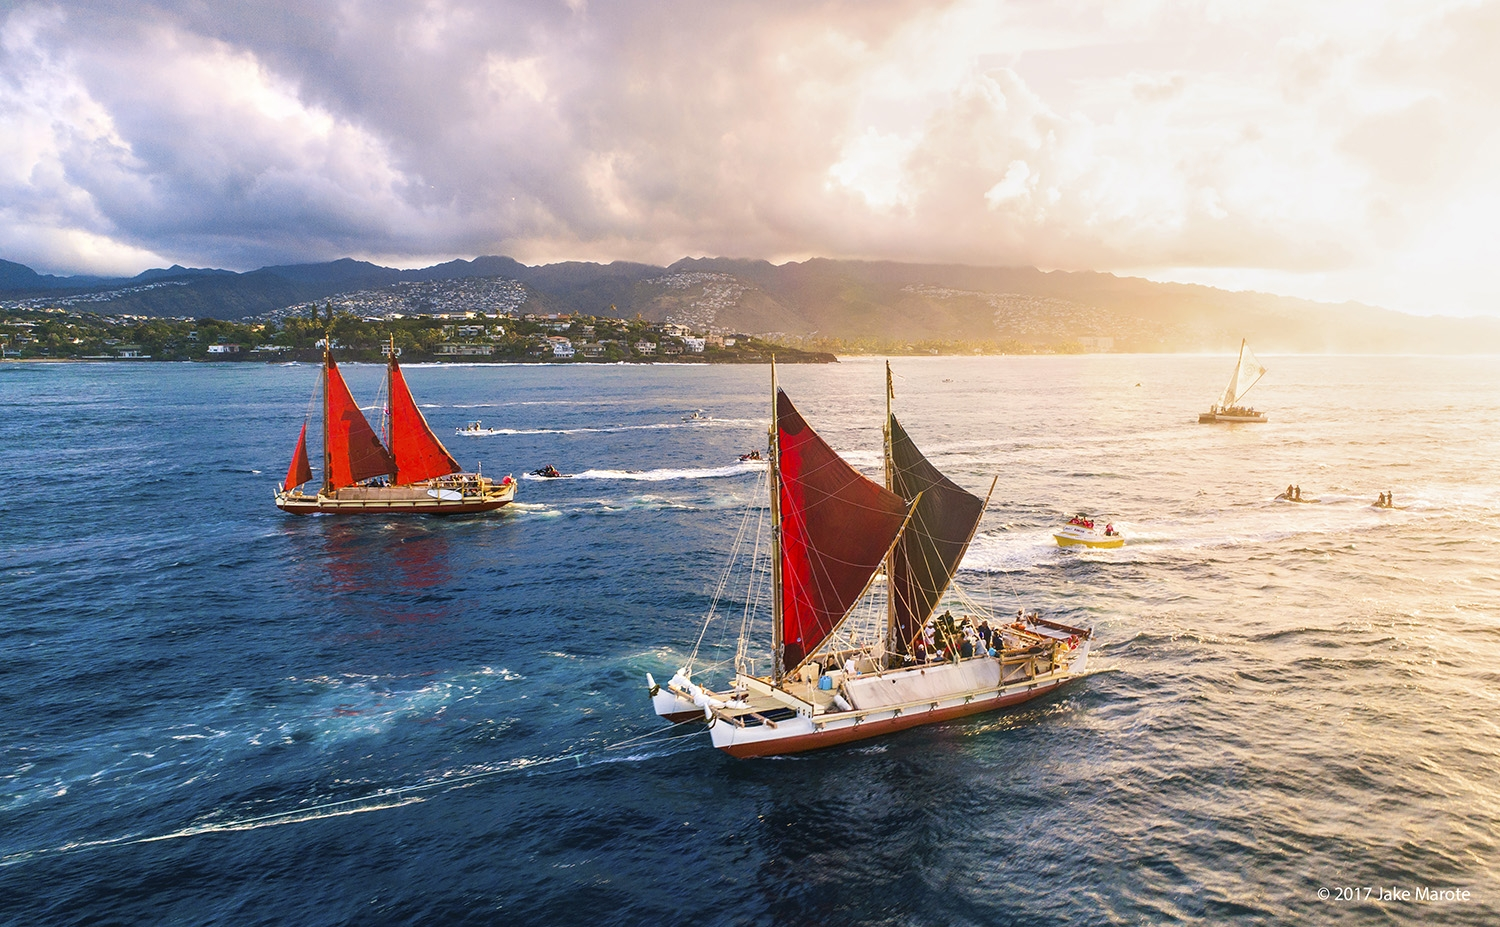 H K Le A The M Lama Honua Worldwide Voyage Continues Into